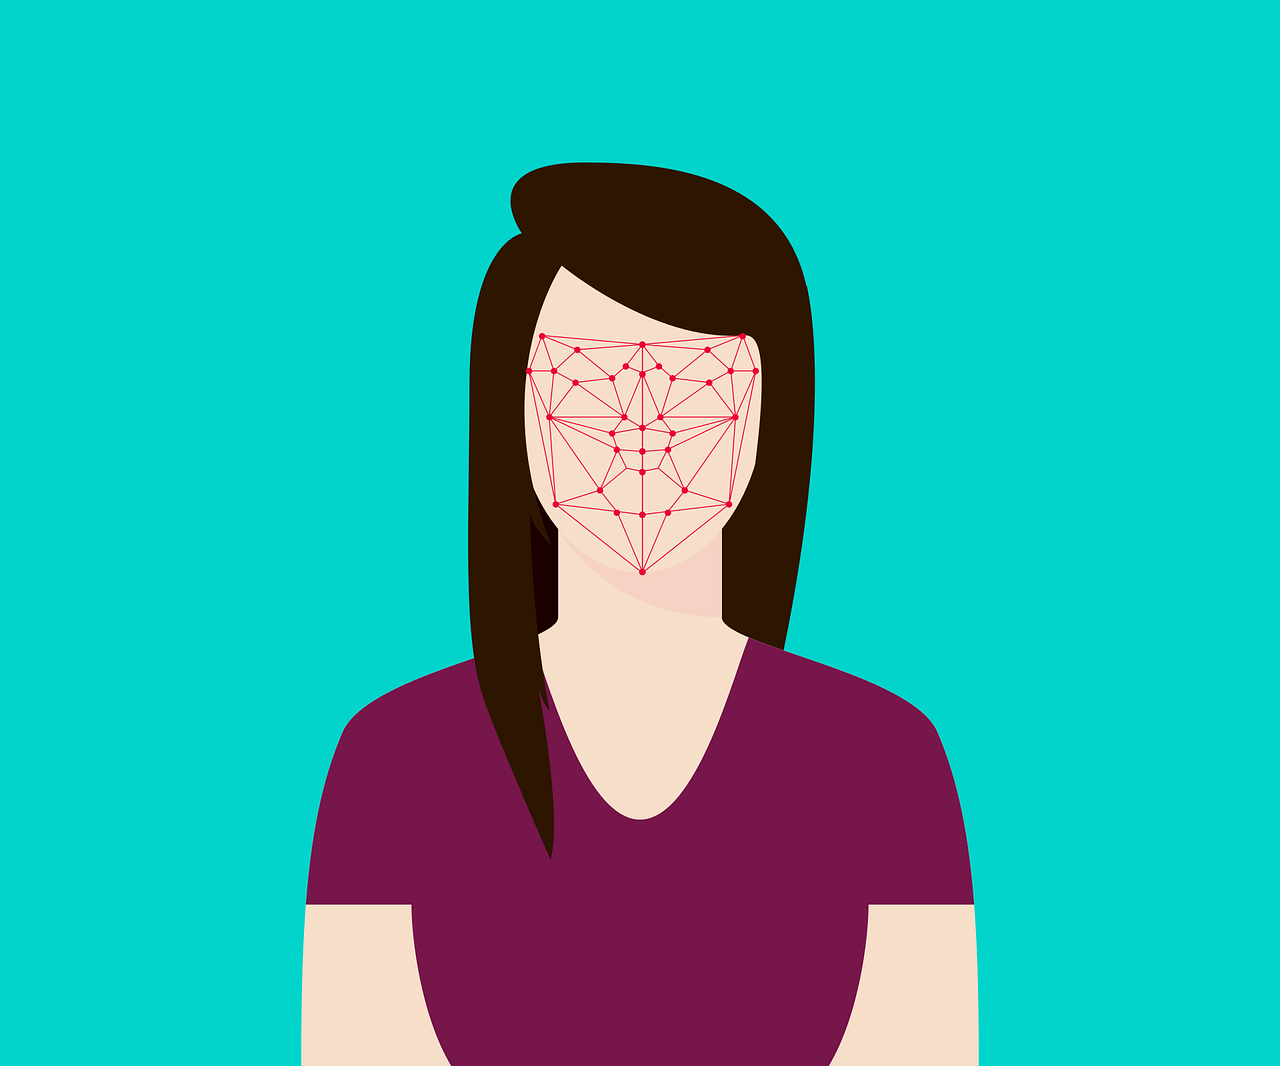 Professor Woodrow Hartzog Calls for a Ban on Facial Recognition Technology in New Publication